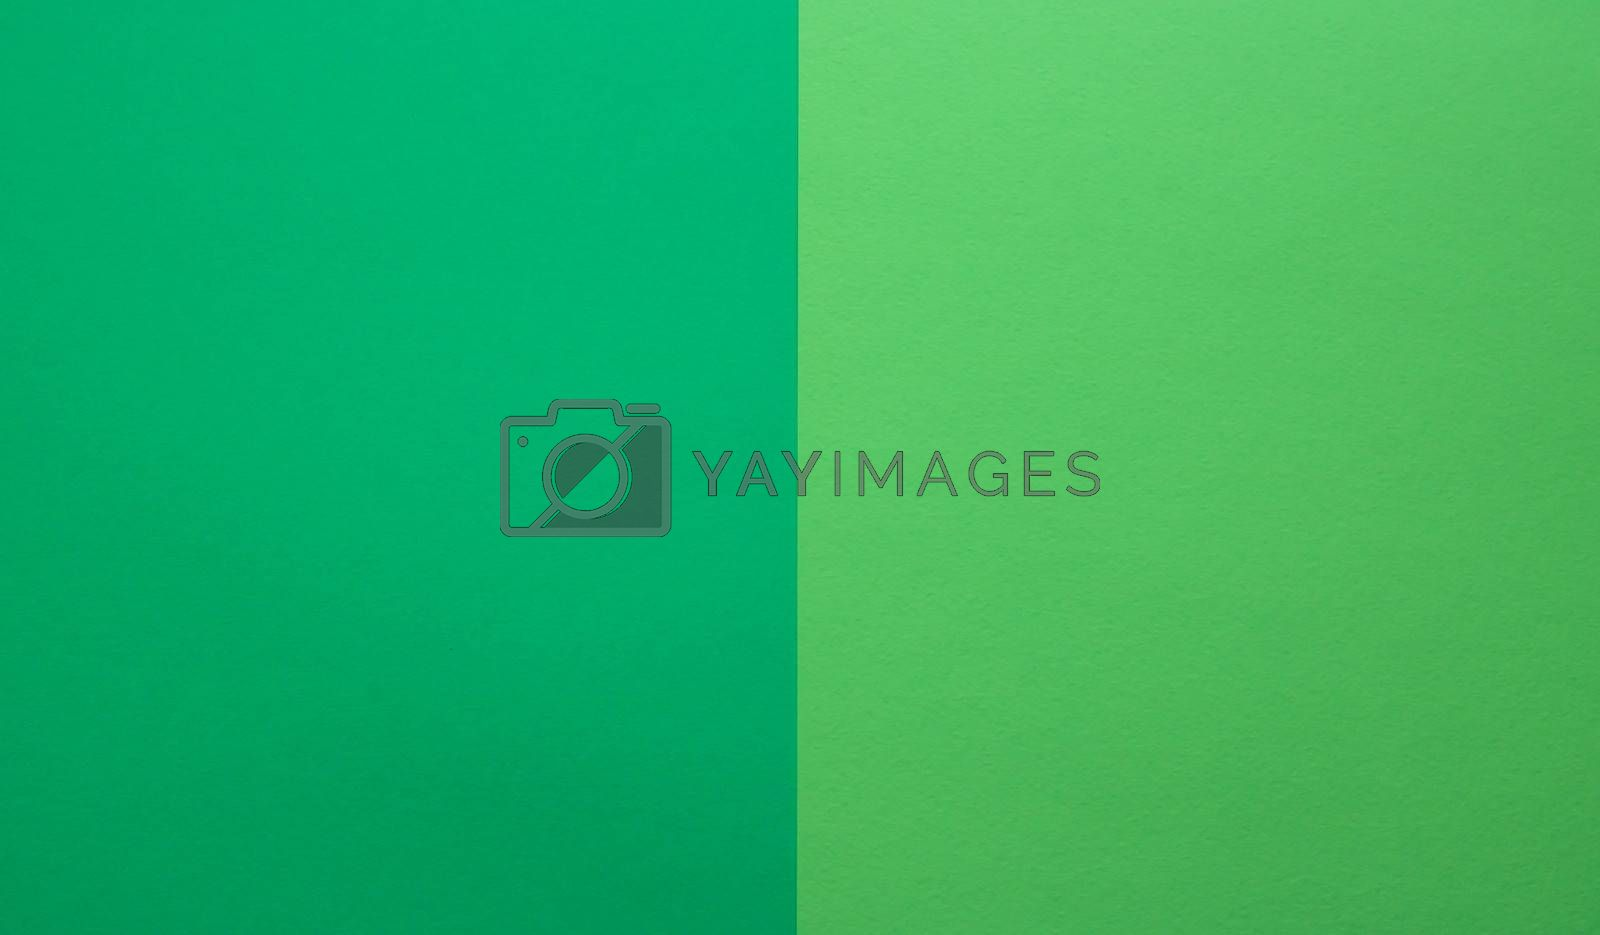 green and light green pastel paper color for the background